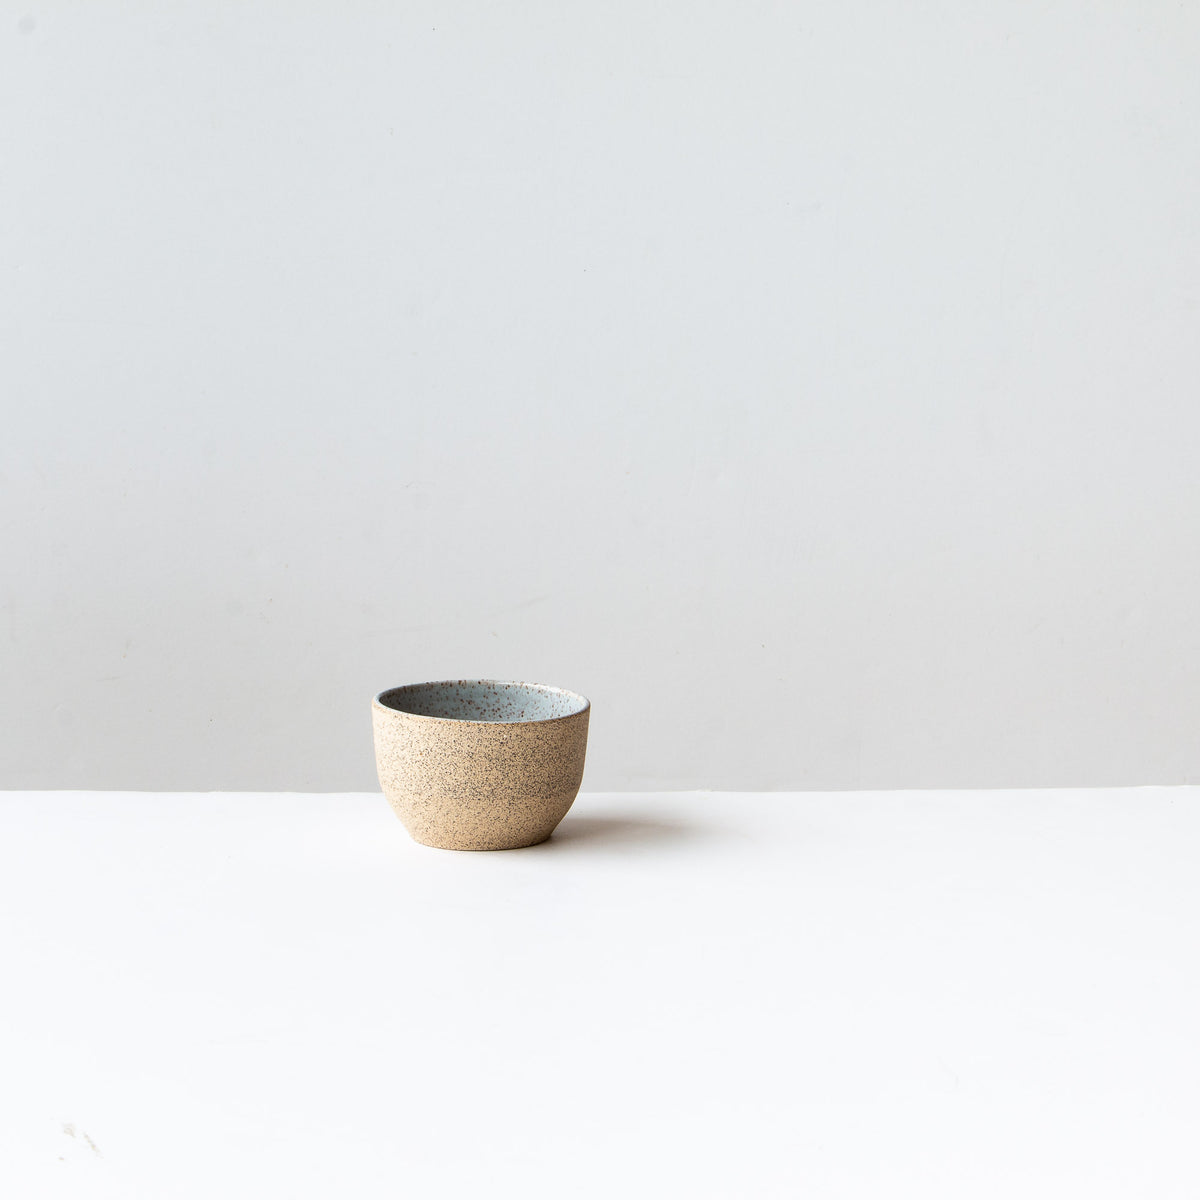 Small Speckled Stoneware Tea Bowl - Pale Blue Glaze - Sold by Chic & Basta